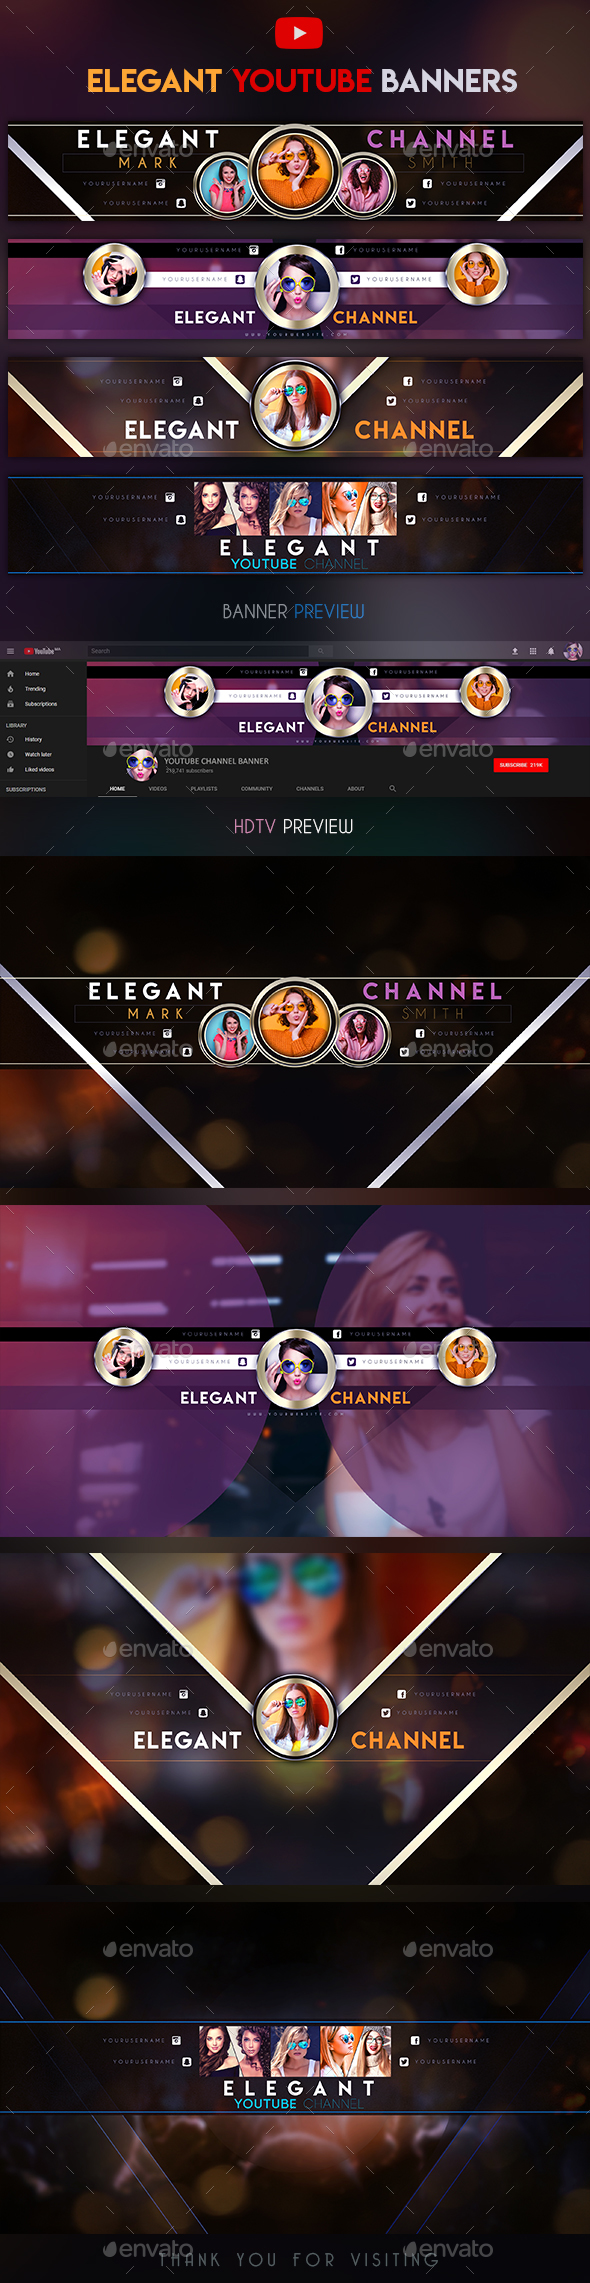 Elegant YouTube Banners - YouTube Social Media